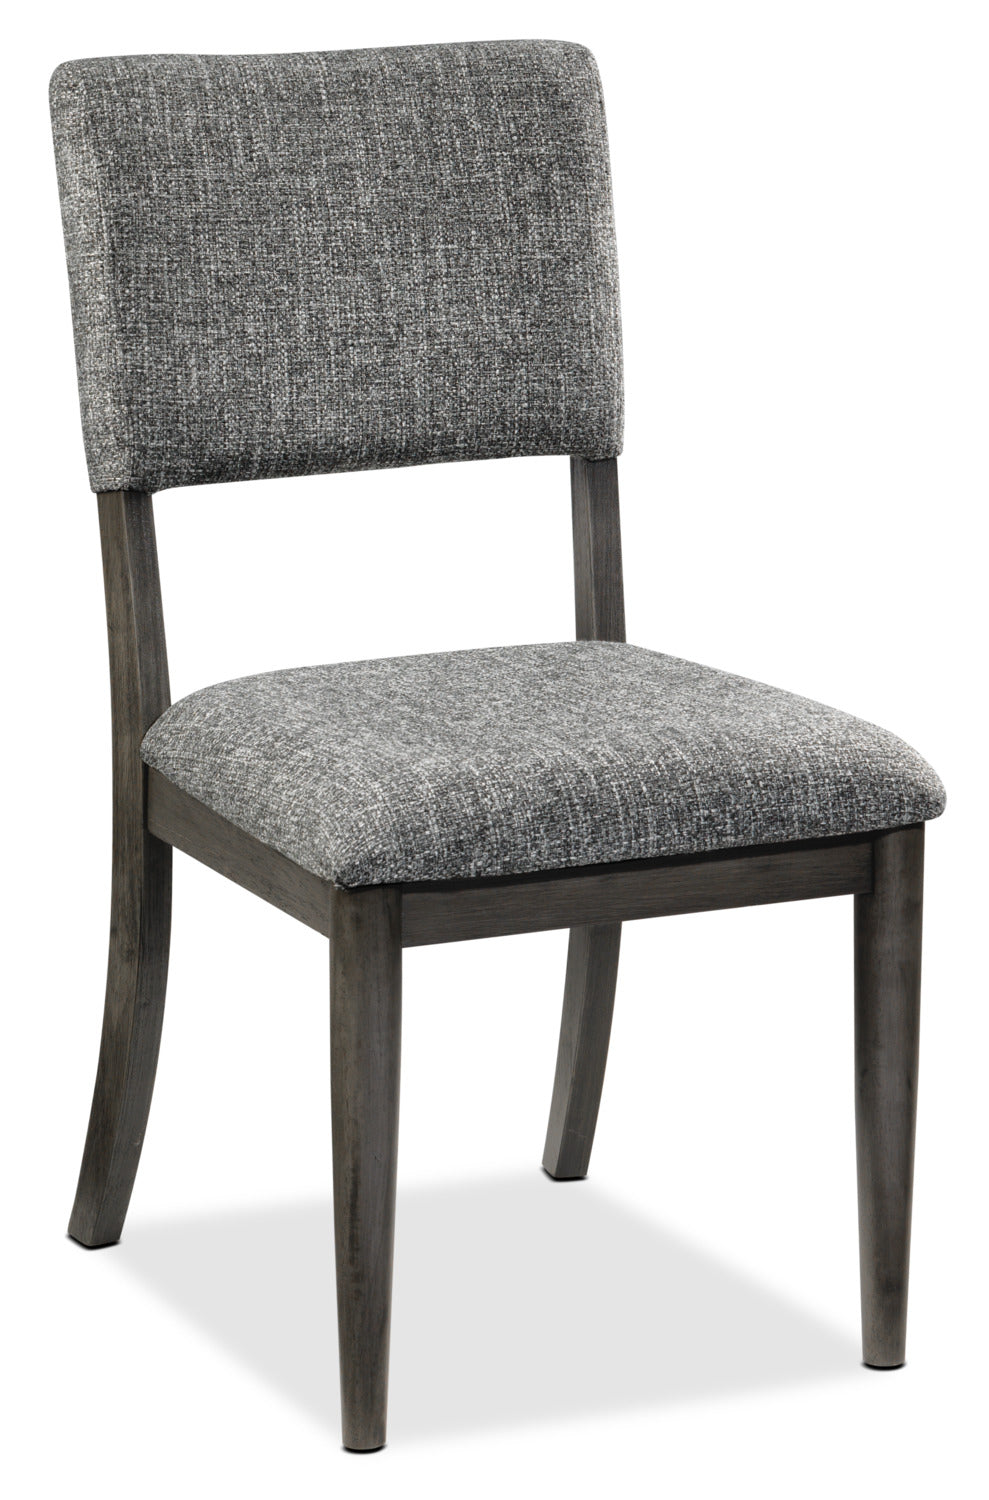 gray dining room chairs. Dining Room Set - Grey. Hover To Zoom. Previous; Next Gray Chairs I